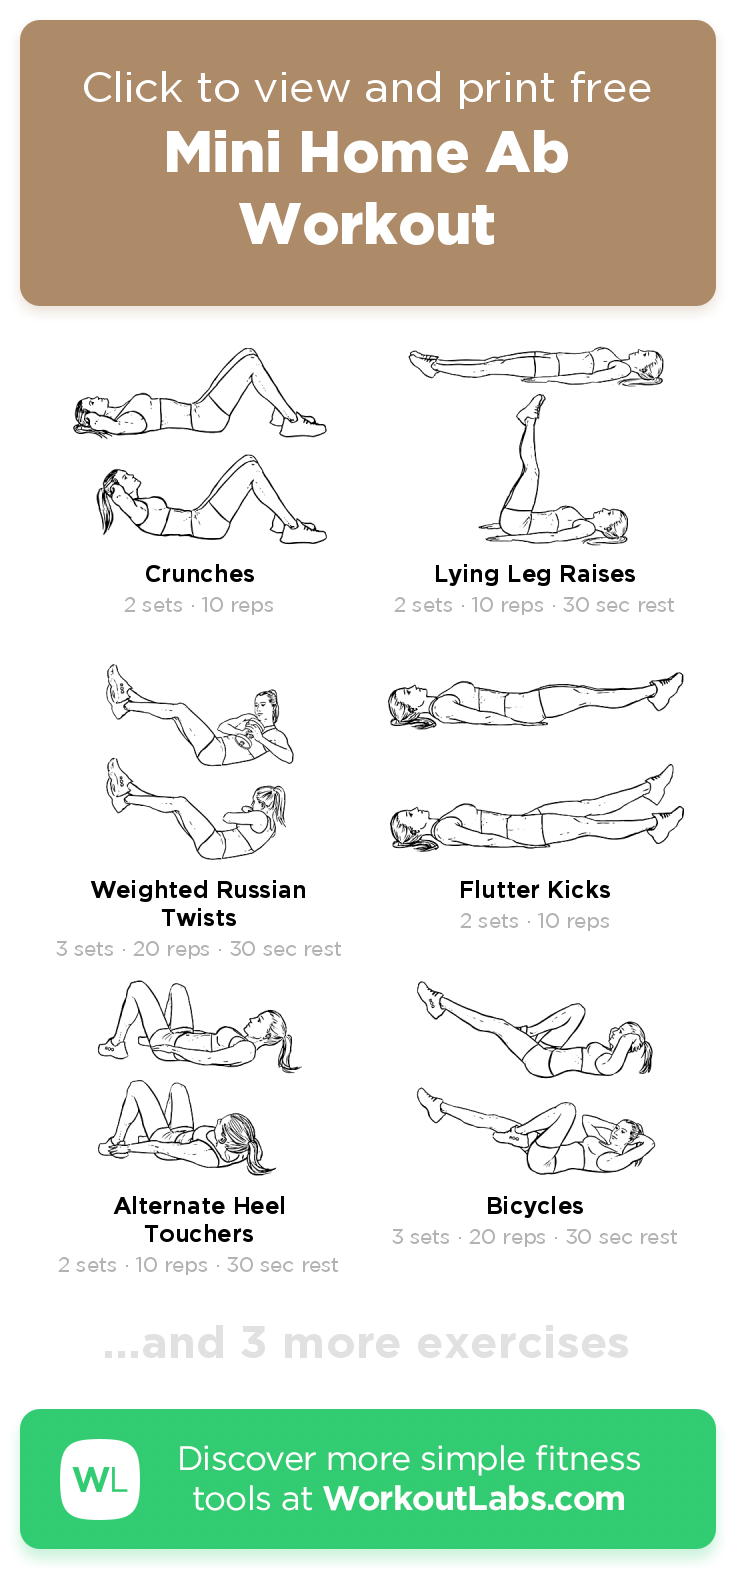 Mini Home Ab Workout · WorkoutLabs Fit